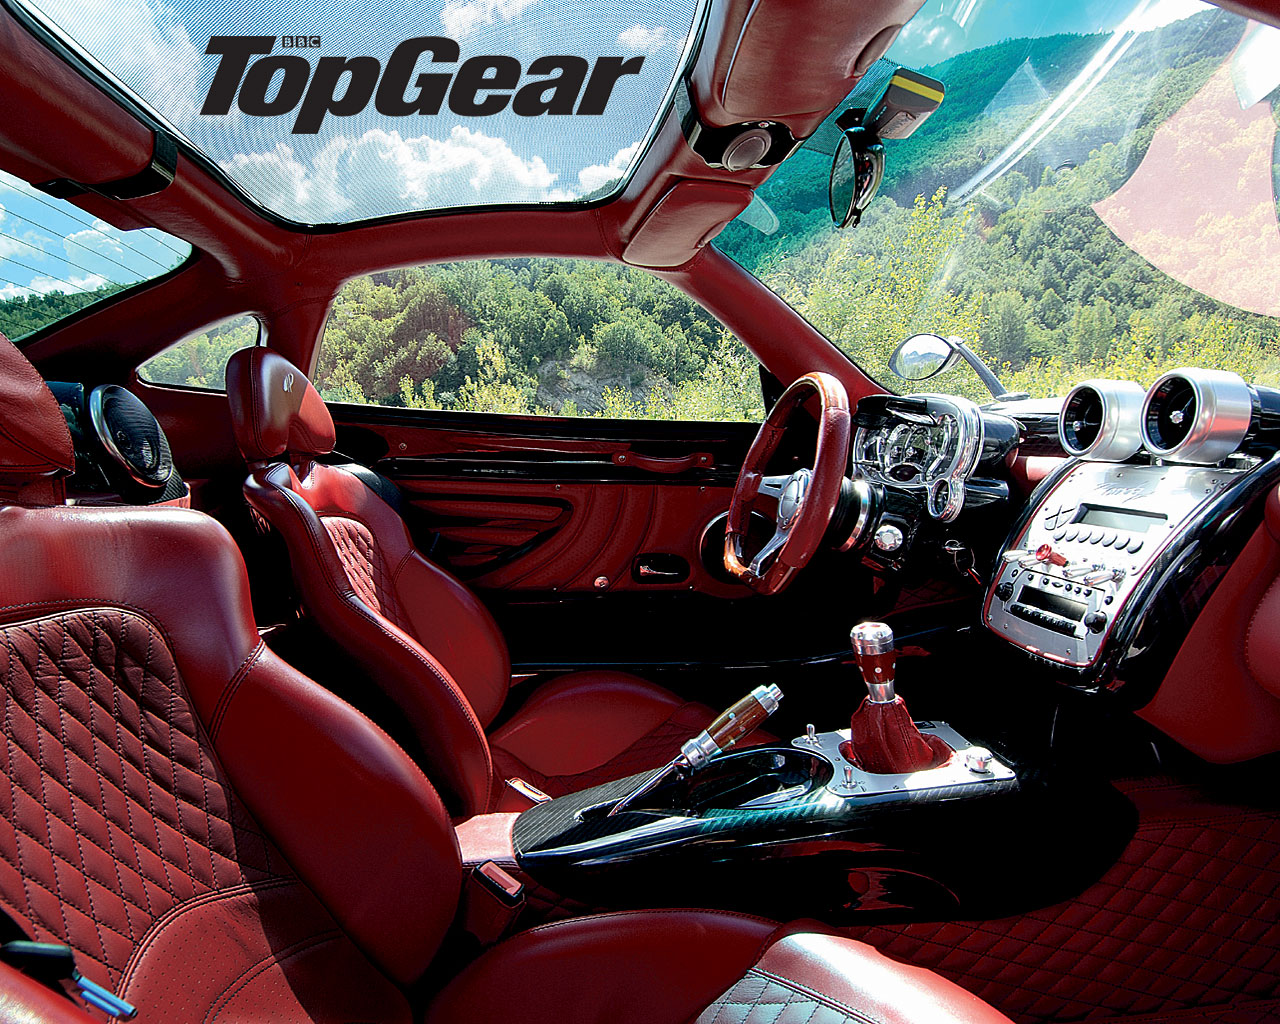 Top Gear Top Gear Wallpaper 25479859 Fanpop